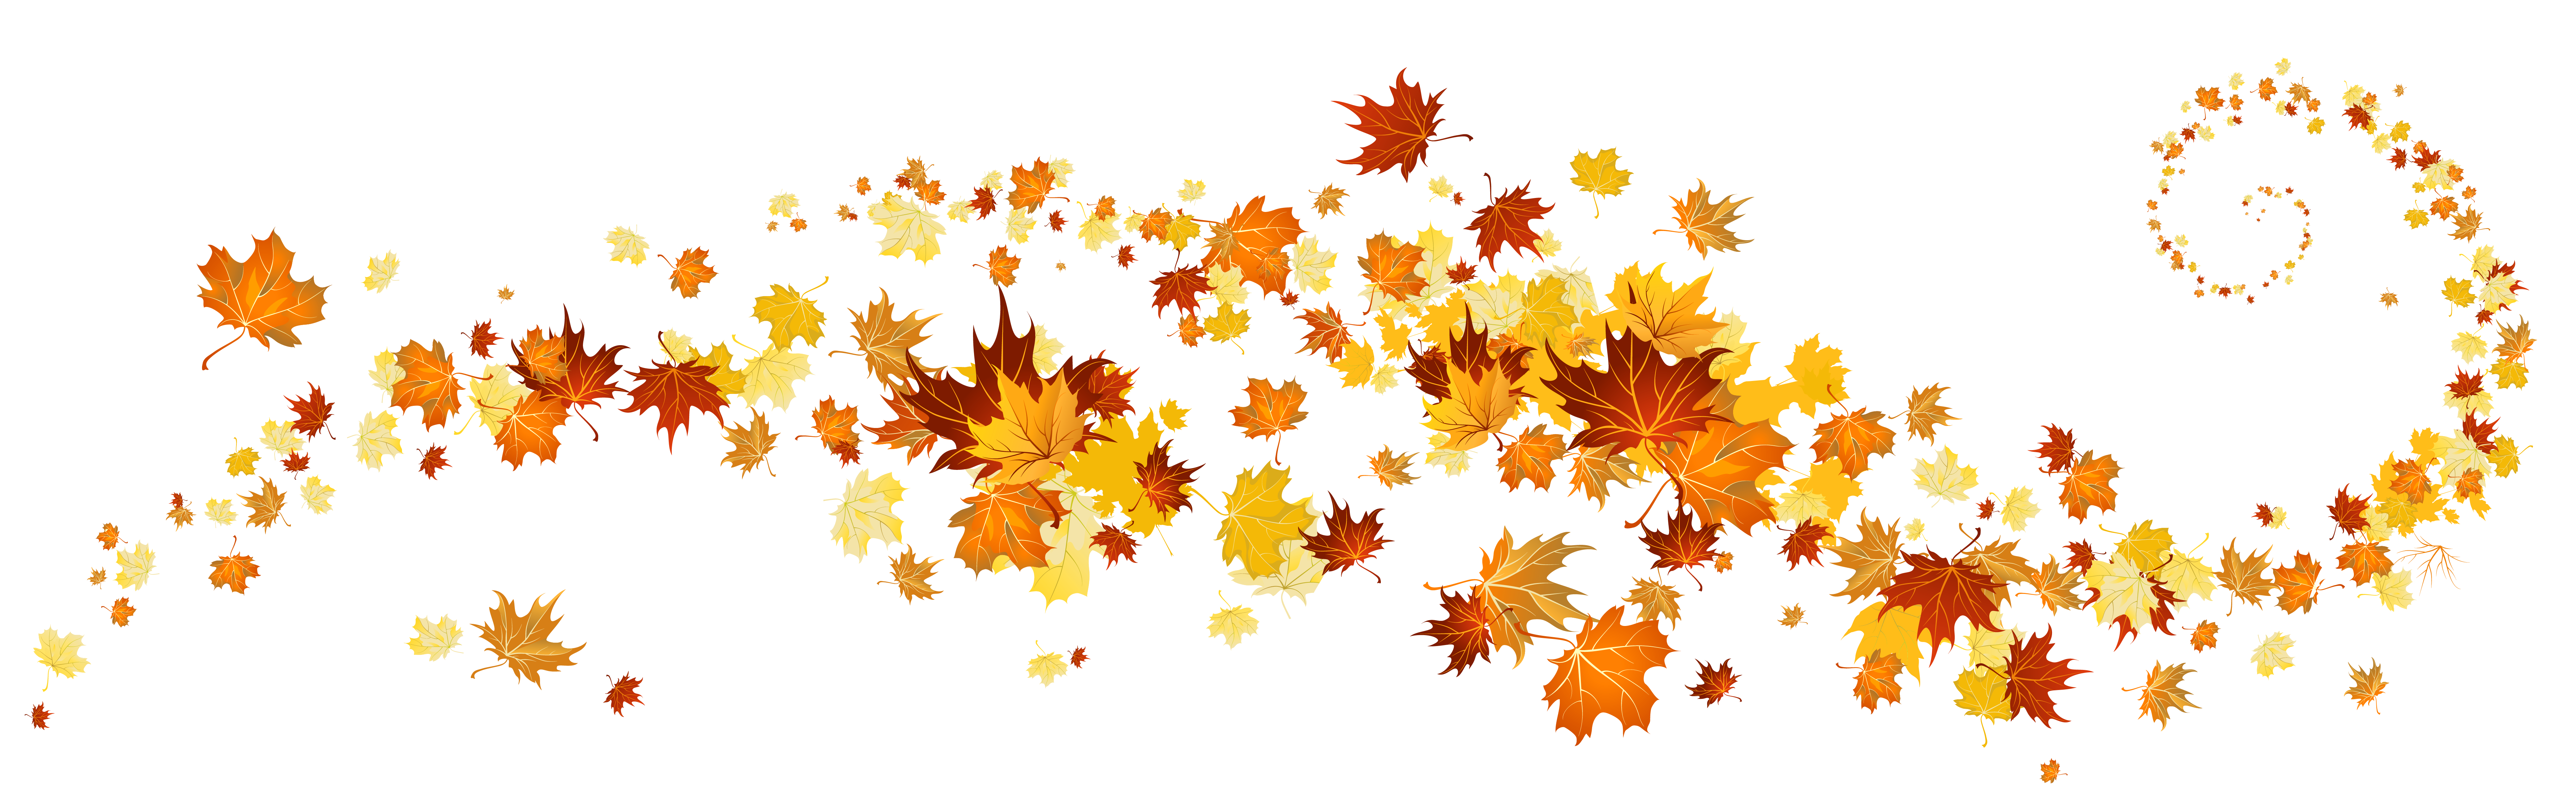 Leaves Fall Leaf Clip Art .-leaves fall leaf clip art .-16